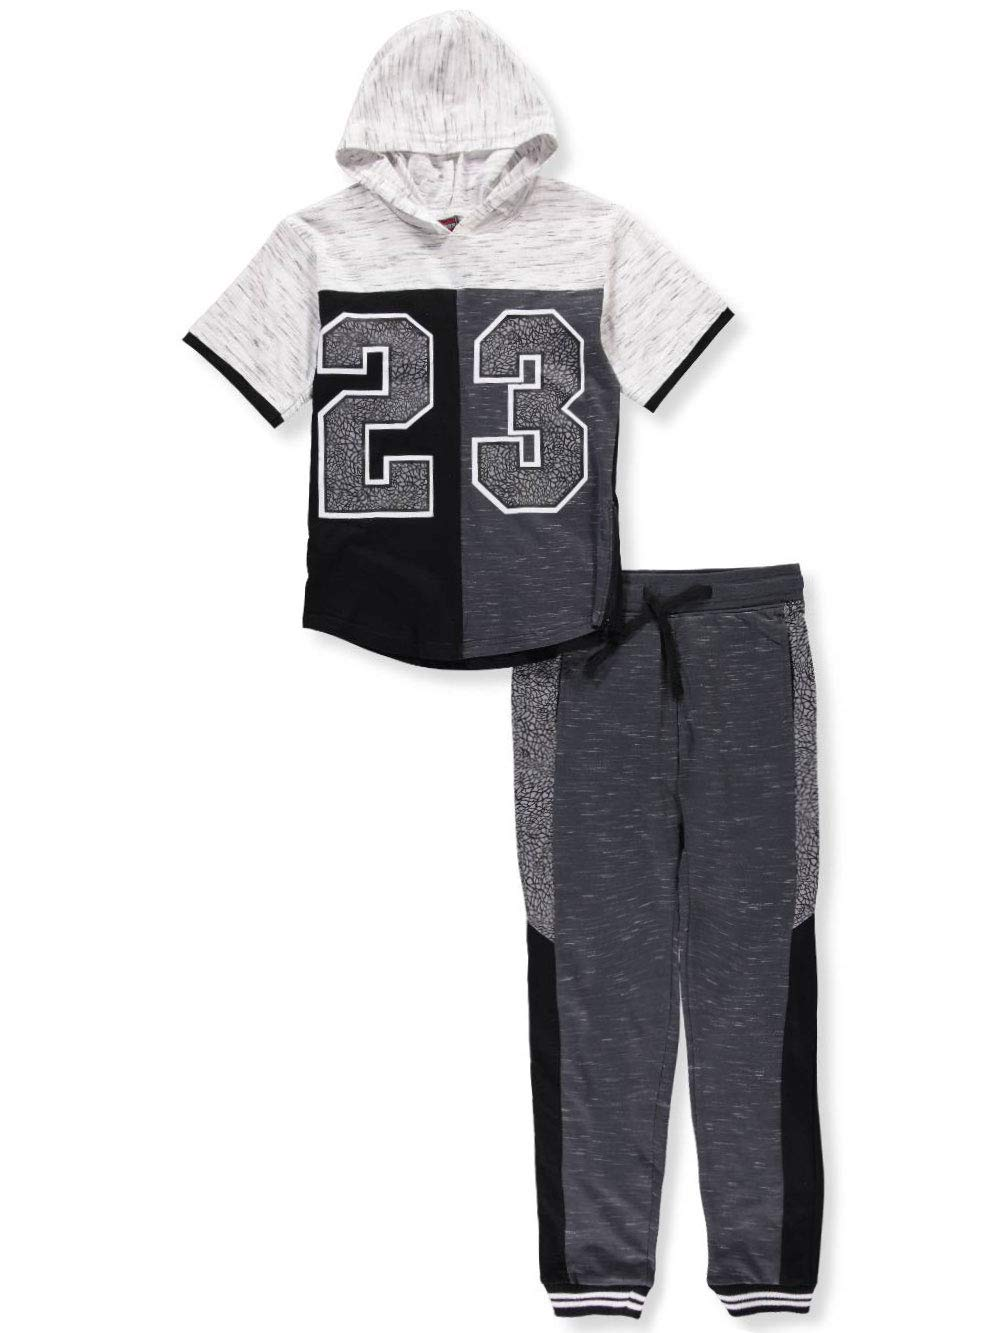 Quad Seven Boys' 2-Piece Pants Set Outfit